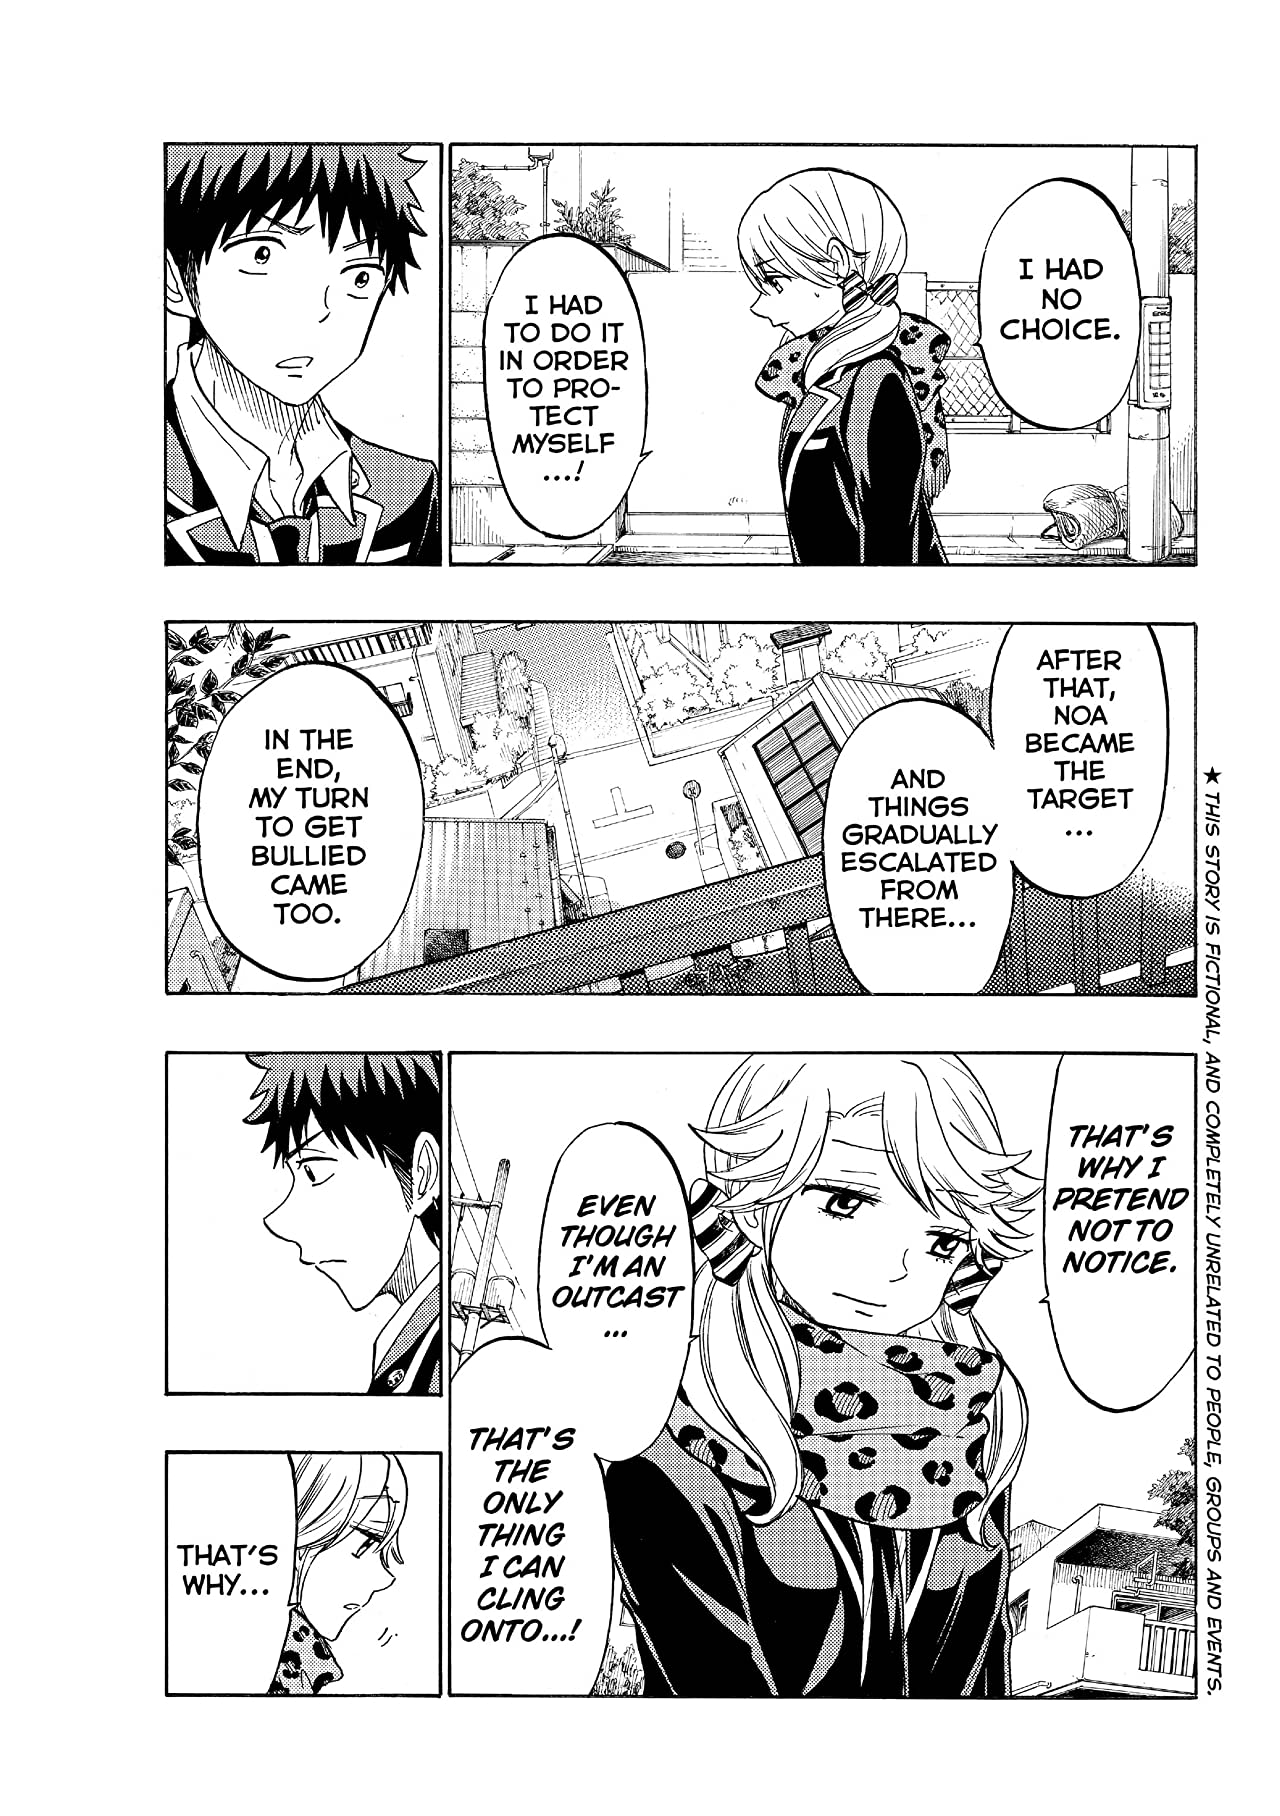 Yamada-kun and the Seven Witches #146